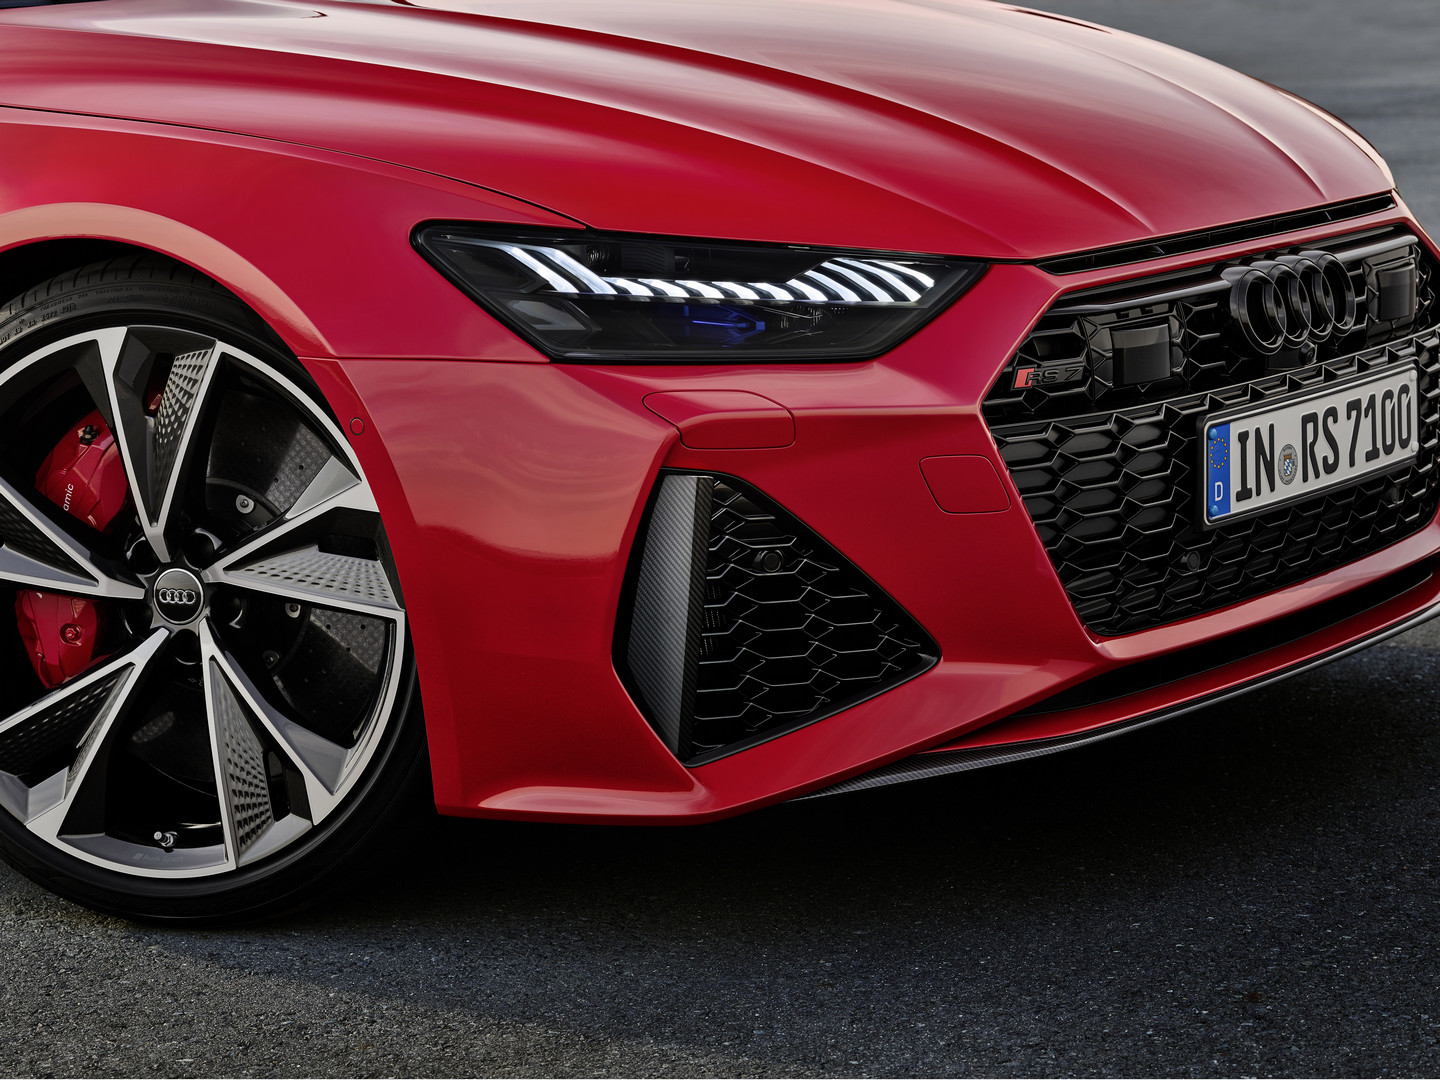 Audi RS7 Sportback Headlights